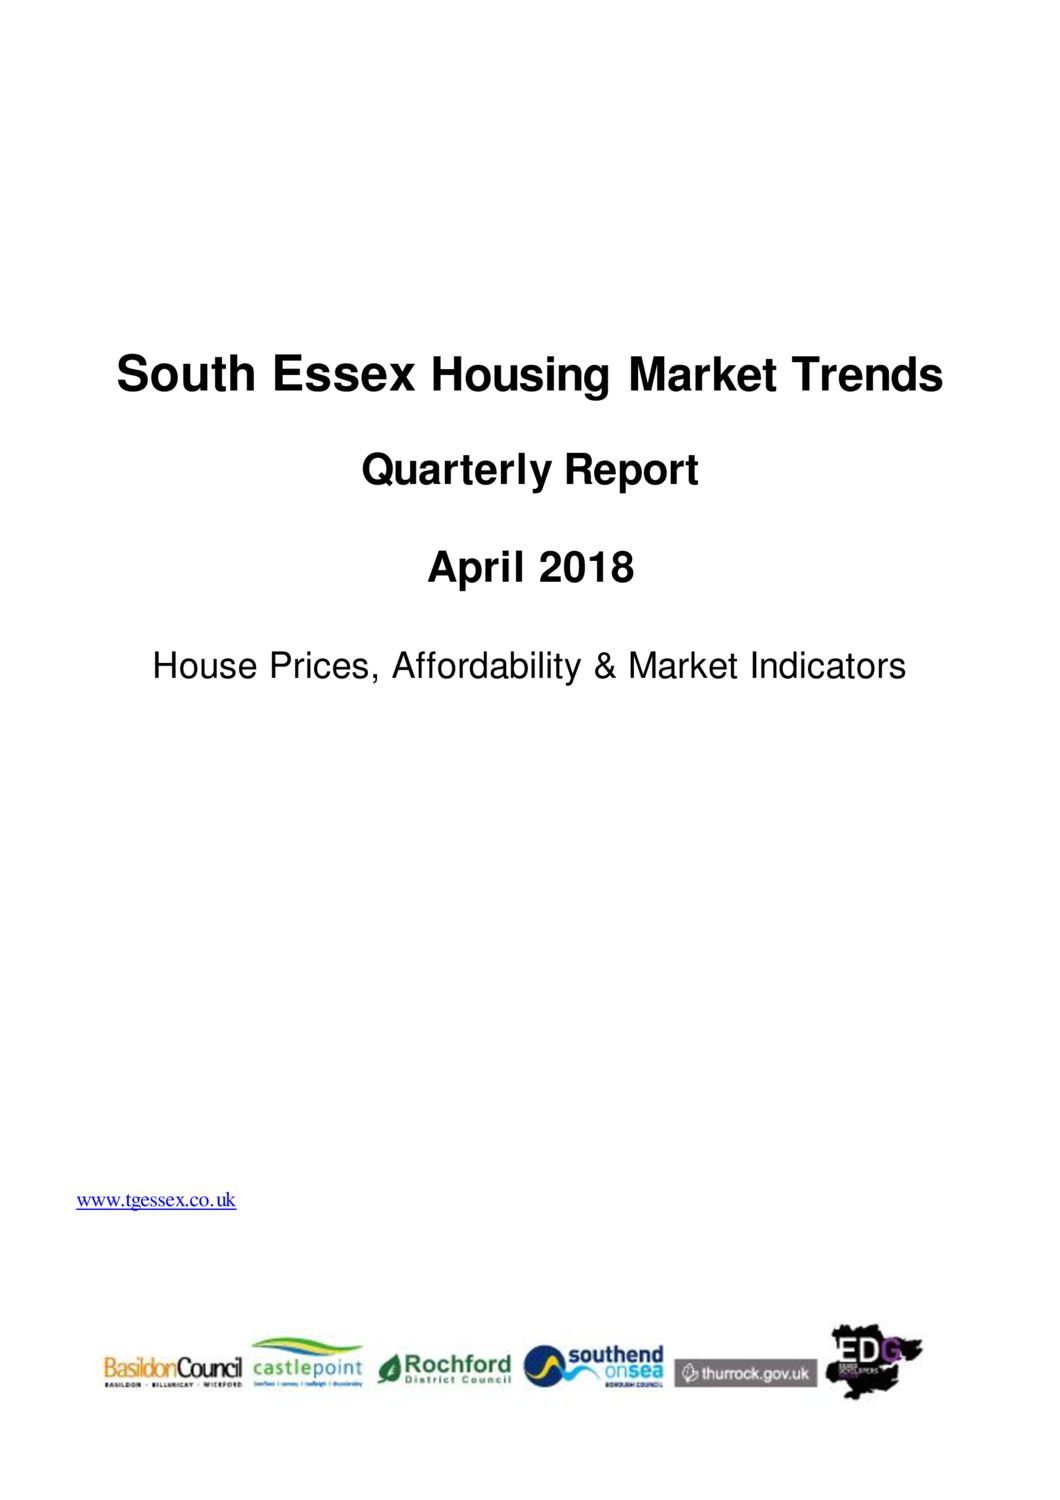 SE Housing Market Trends Quarterly Report April 2018